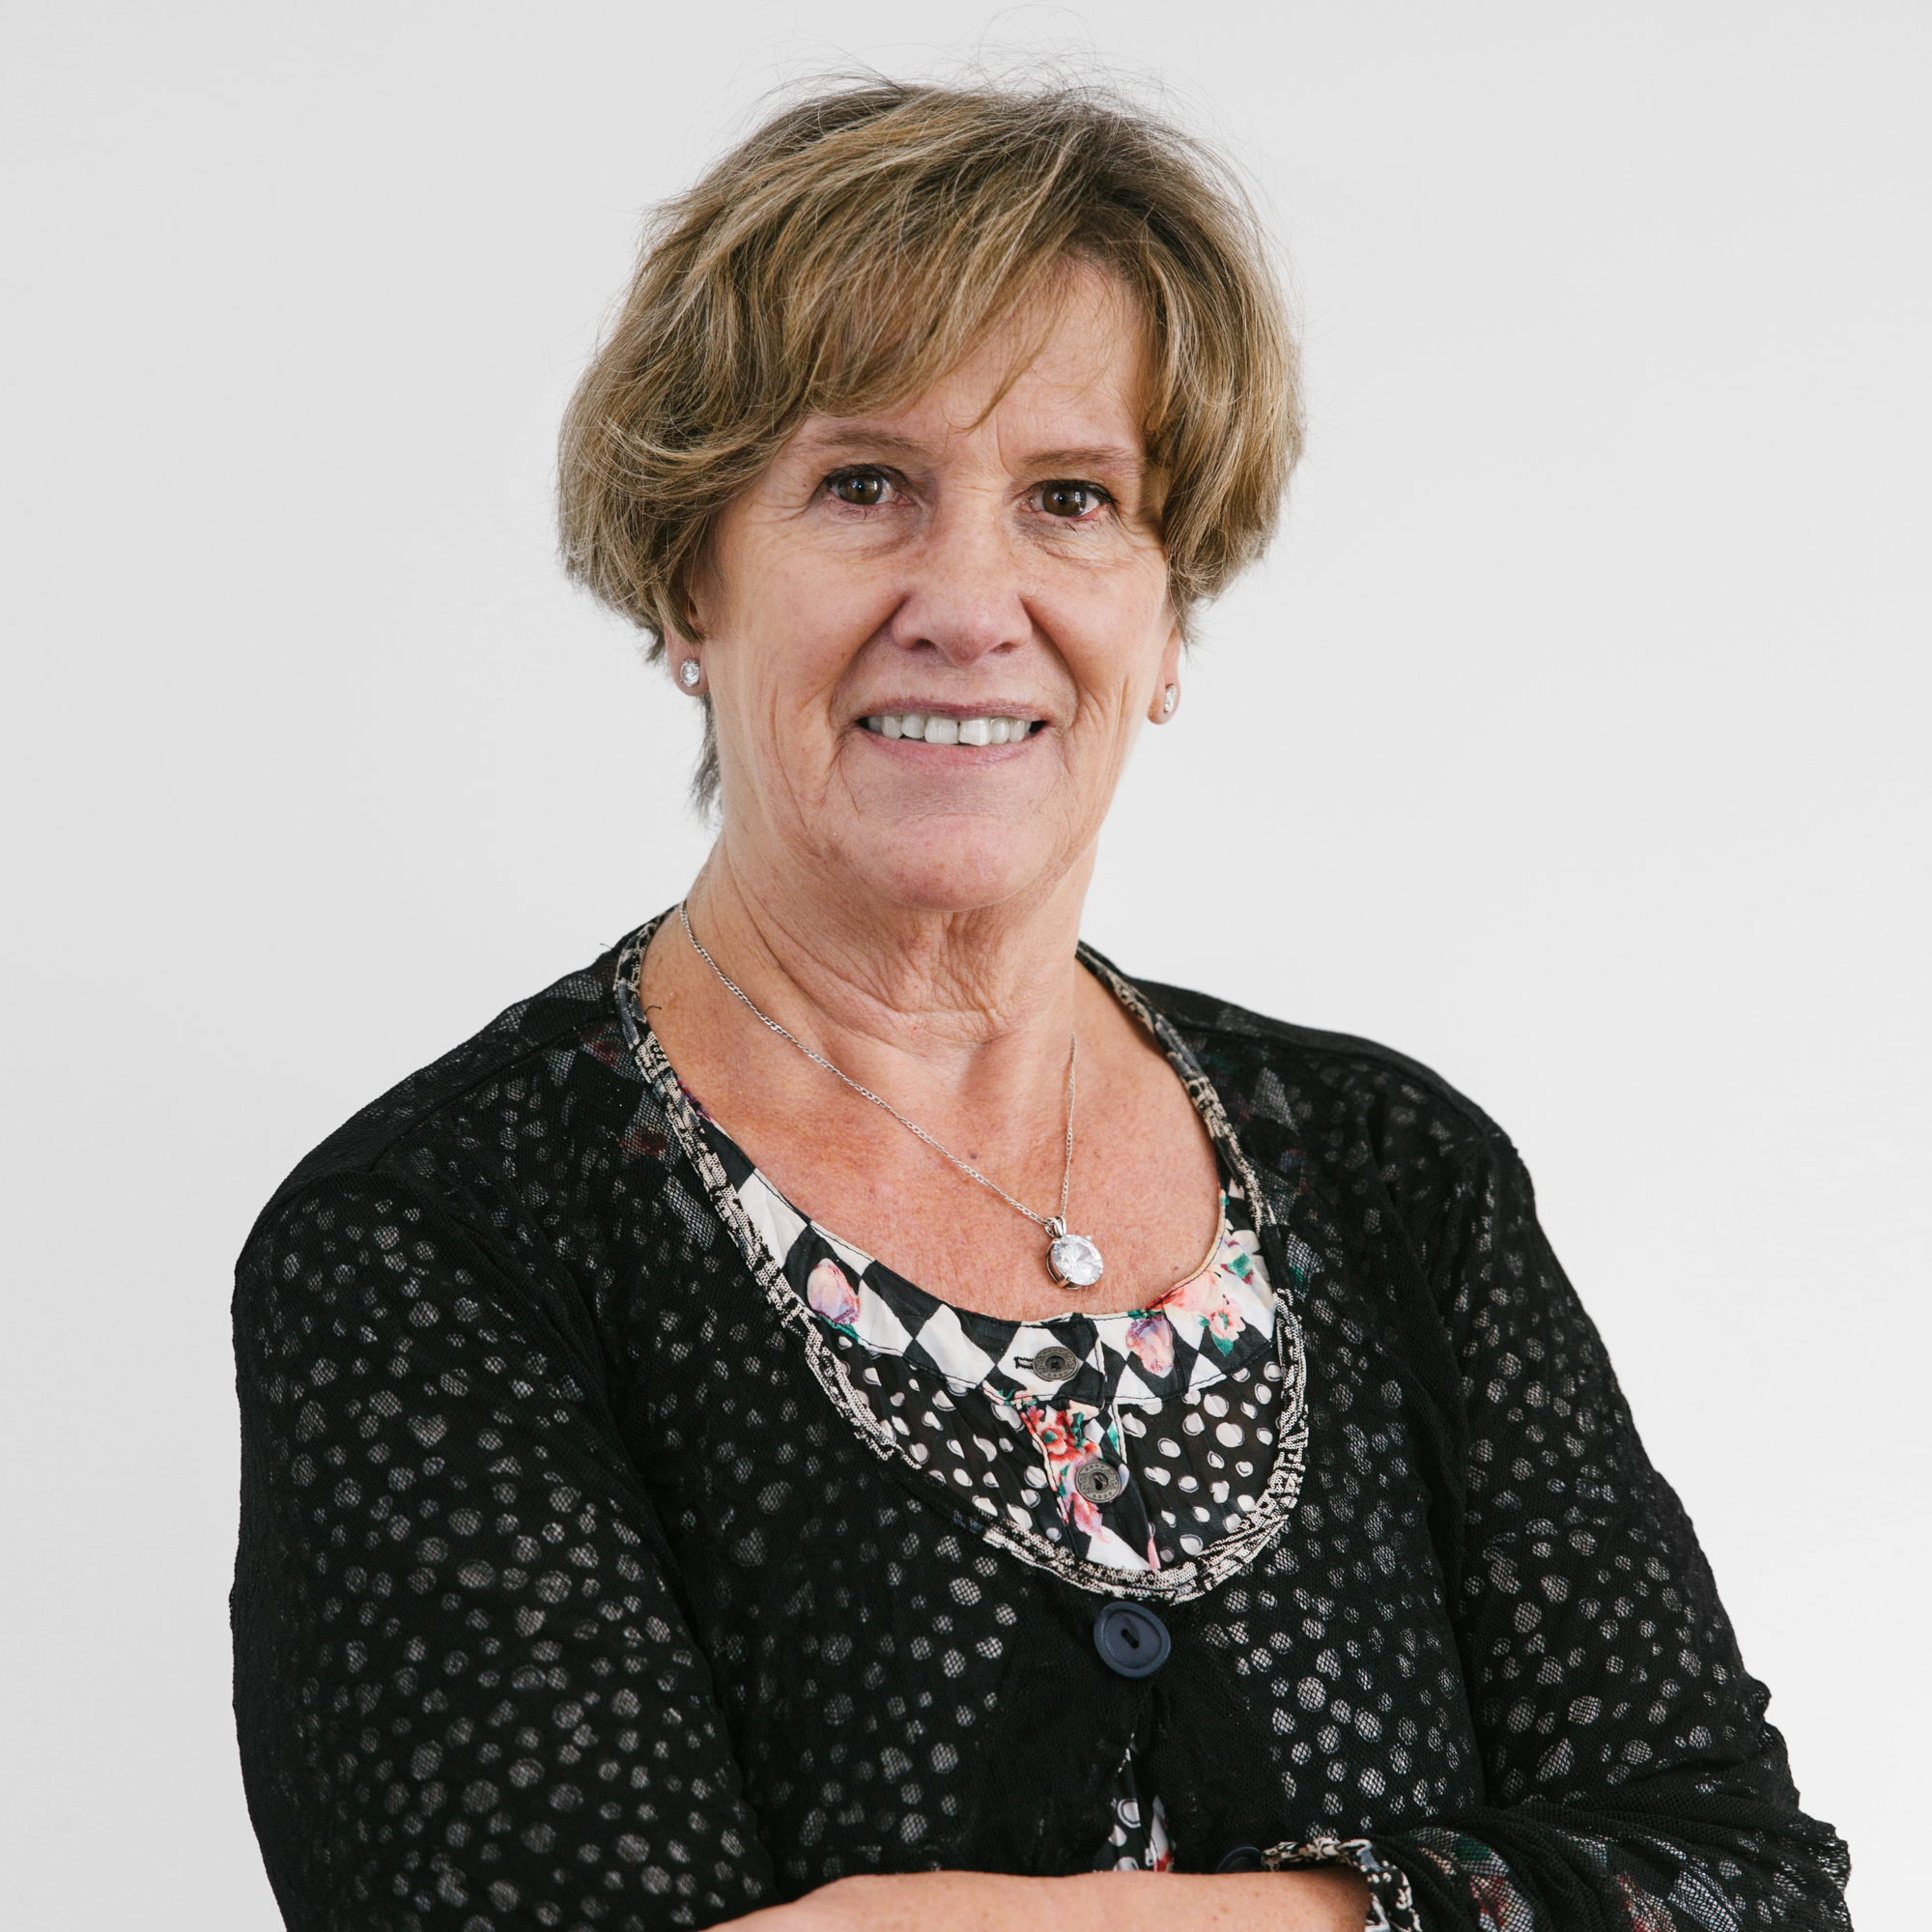 Barbara Braddock   Insurance Adviser    Barbara is the Insurance Specialist at Bozinoff Mortgages. She has been in the industry for more than 15 years so comes with a wealth of experience and knowledge. Barbara assesses each client on their individual needs and will tailor a package to suit your needs and your budget.  Phone: 04 298 3632 Mobile: 027 511 2610 Email:  barbara@bml.net.nz   Disclosure Statement Barbara Braddock